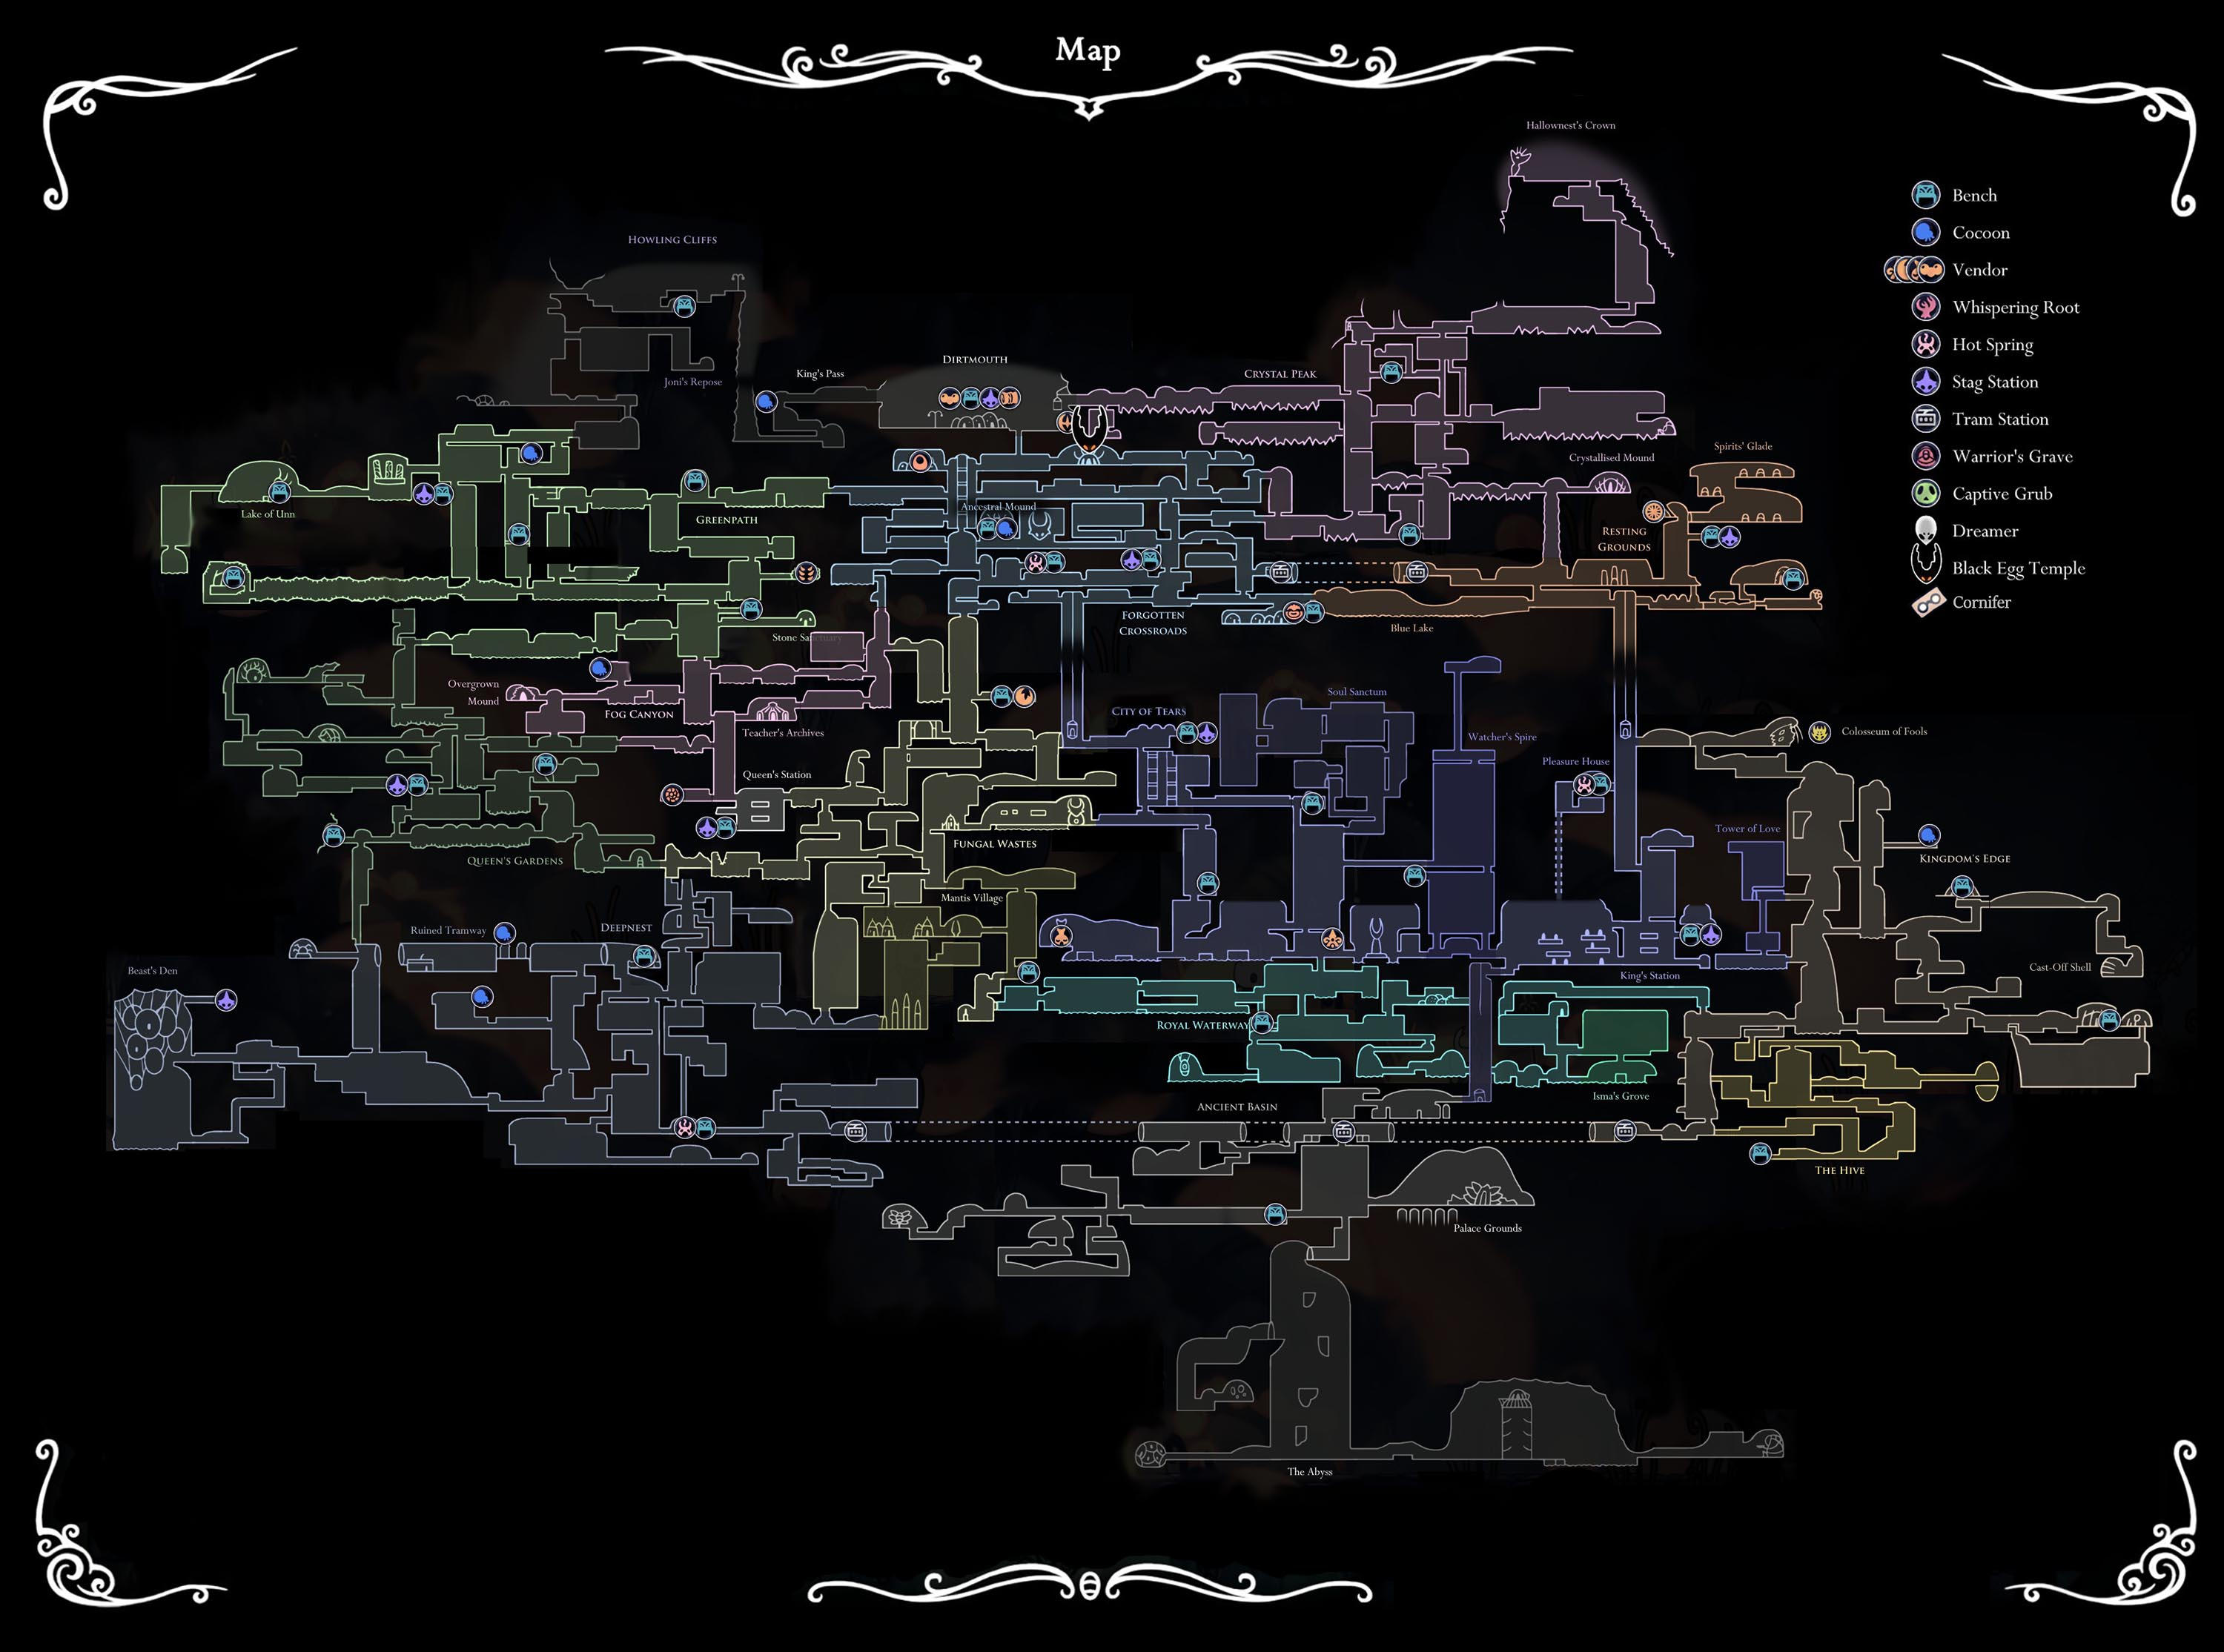 Mapa Completo Hollow Knight.Steam Community Guide Maps Of Hallownest